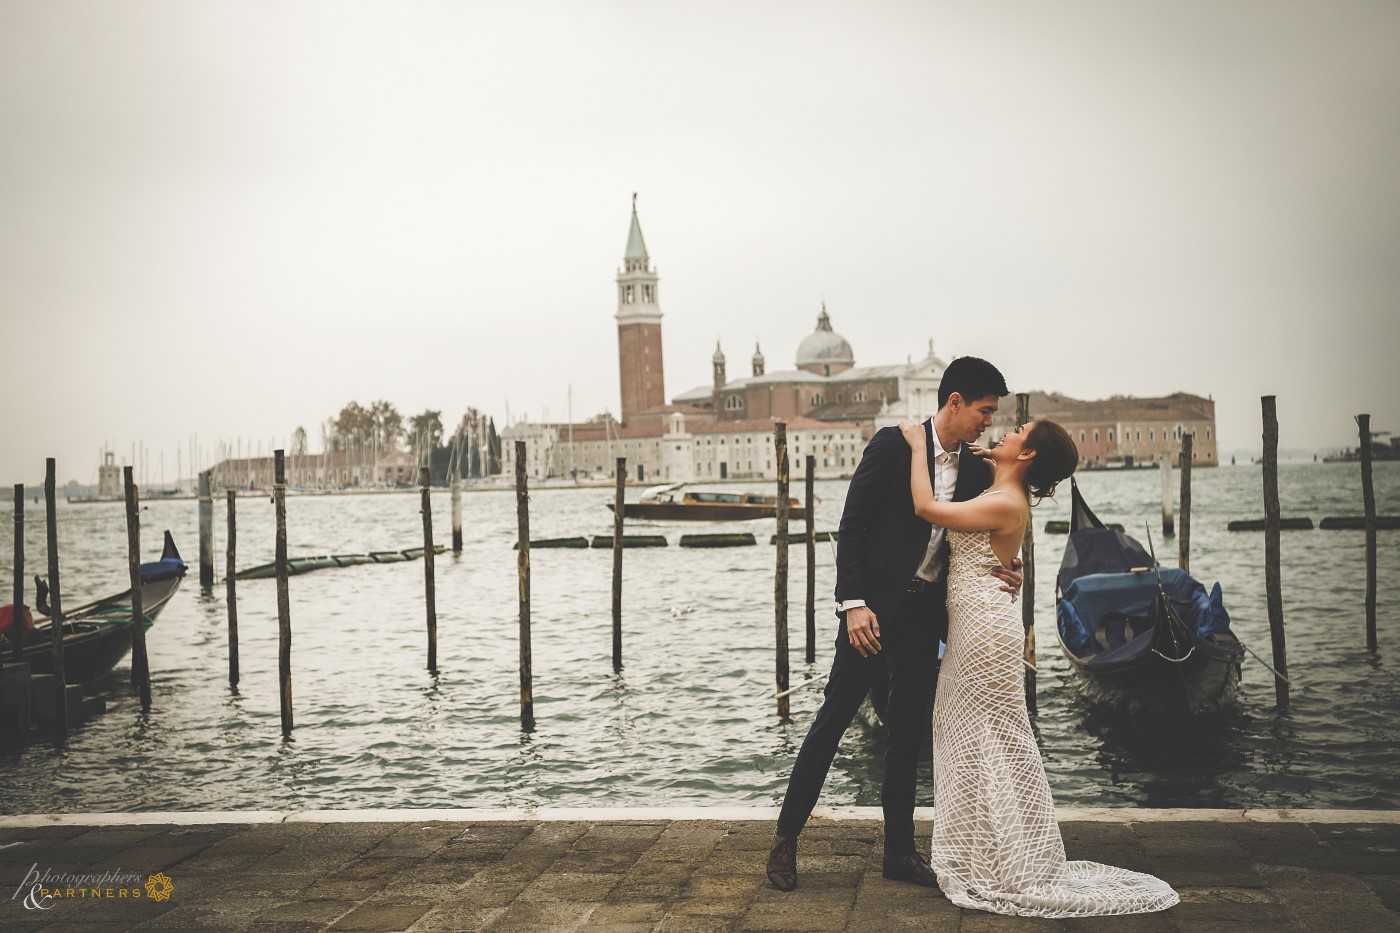 A shot near the pier with the famous church of San Giorgio Maggiore as a backdrop